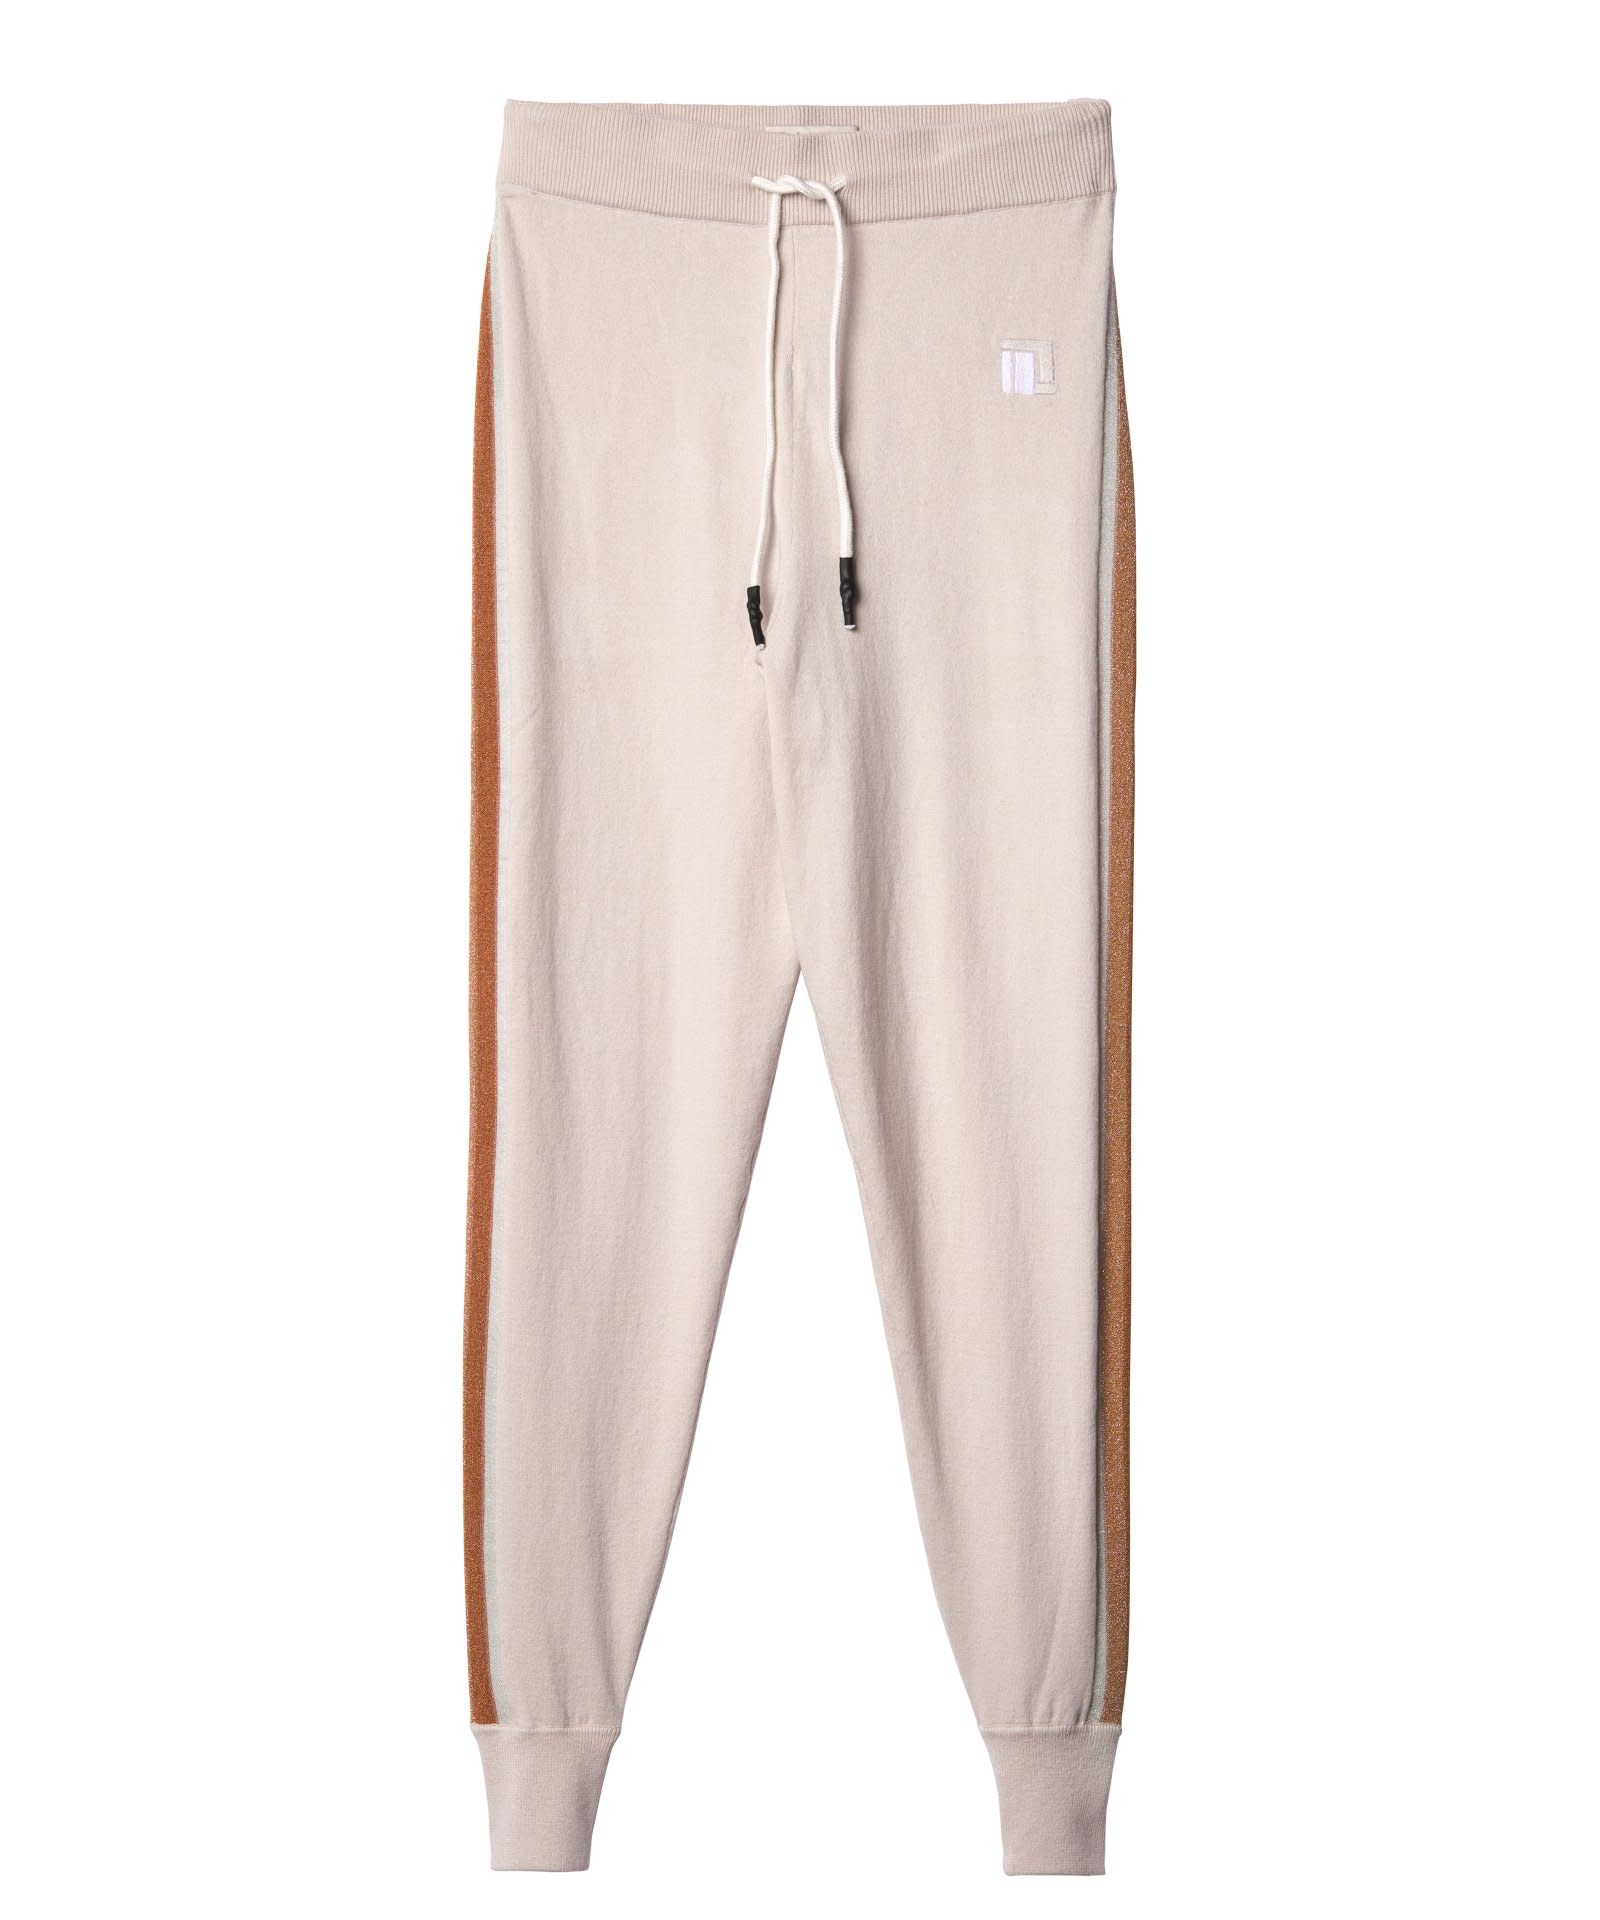 Broek No10 Knitted Jogger Emily Marant-1